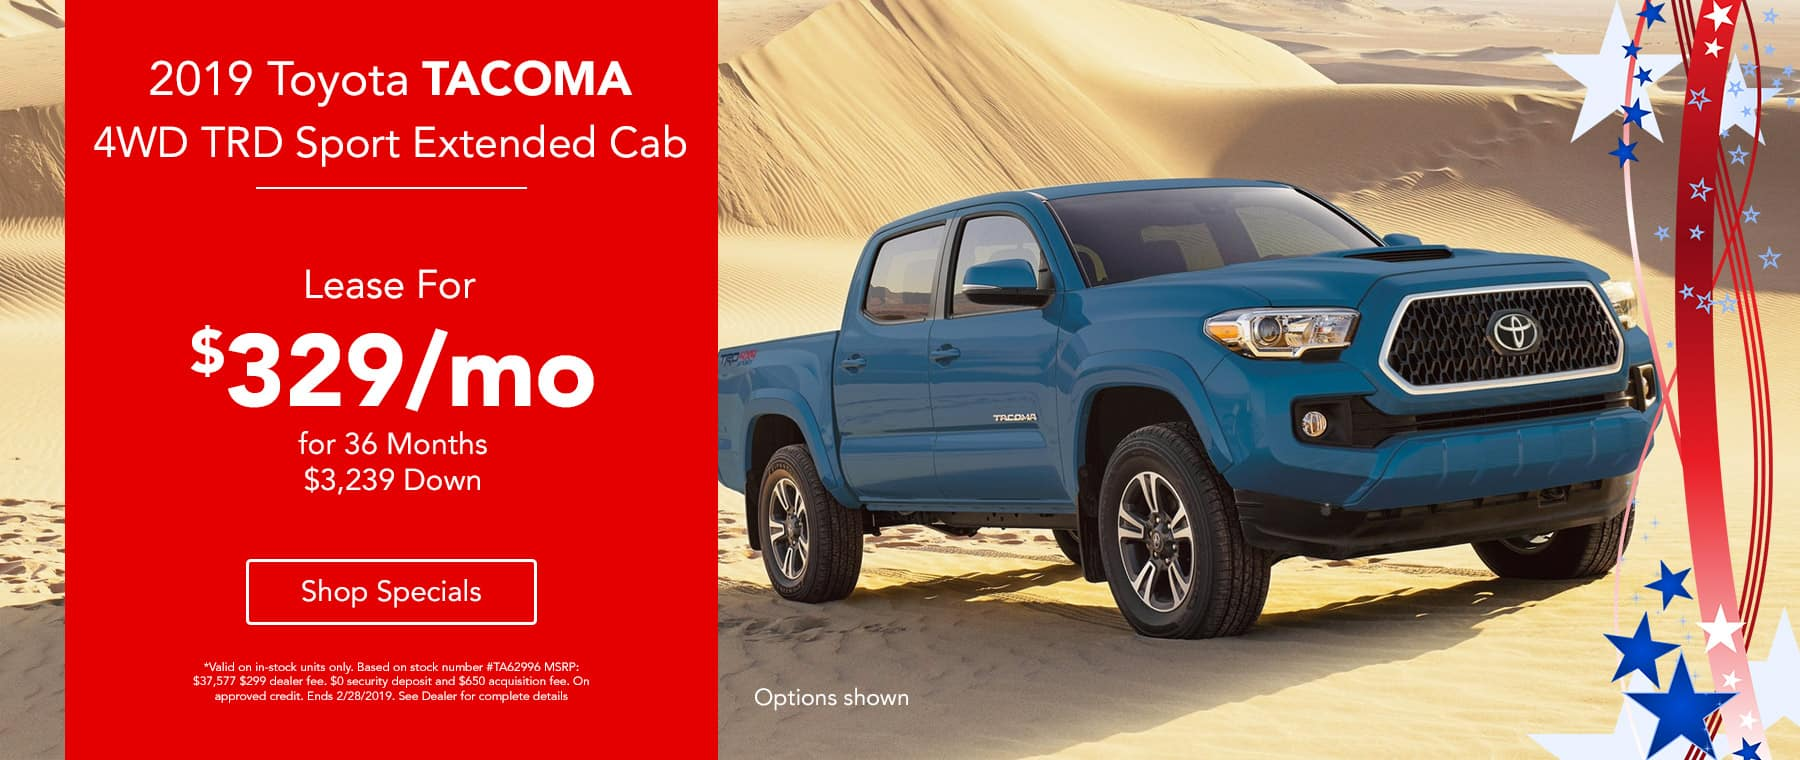 2019 Toyota  Tacoma 4WD TRD Sport Extended Cab